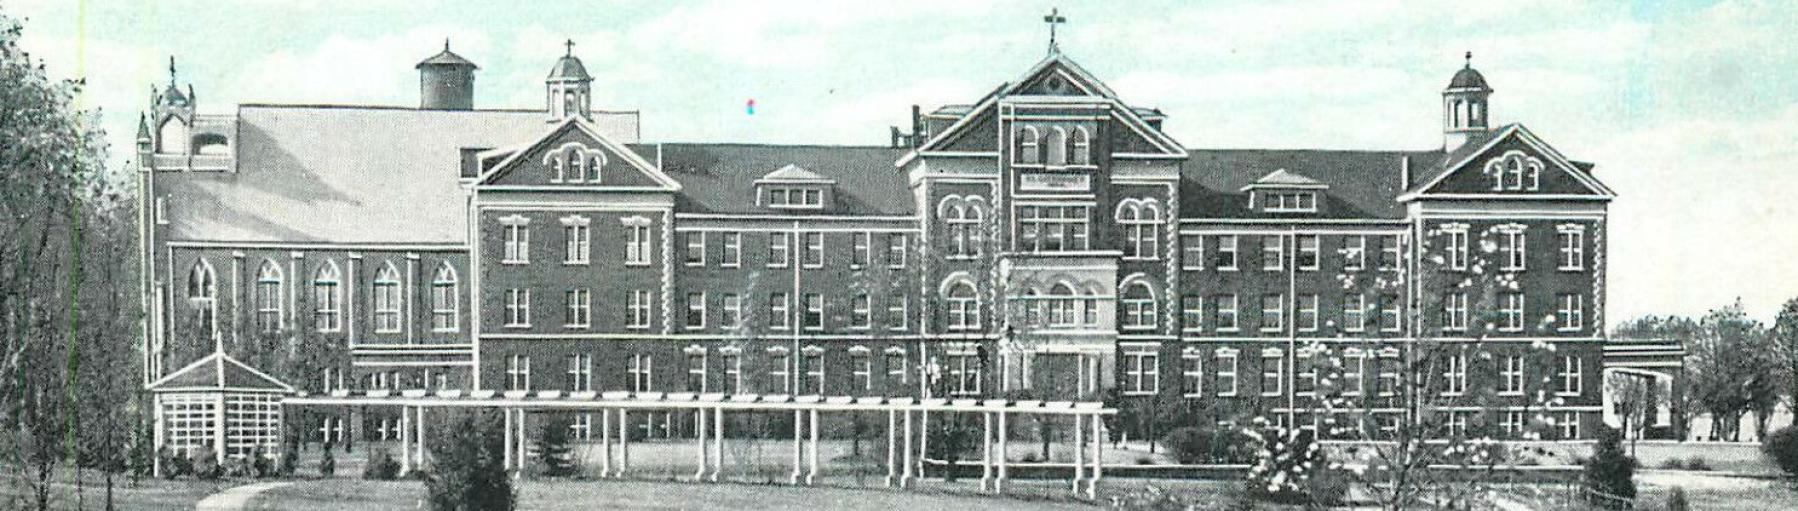 St> Catharine of Siena Convent, Springfield, KY